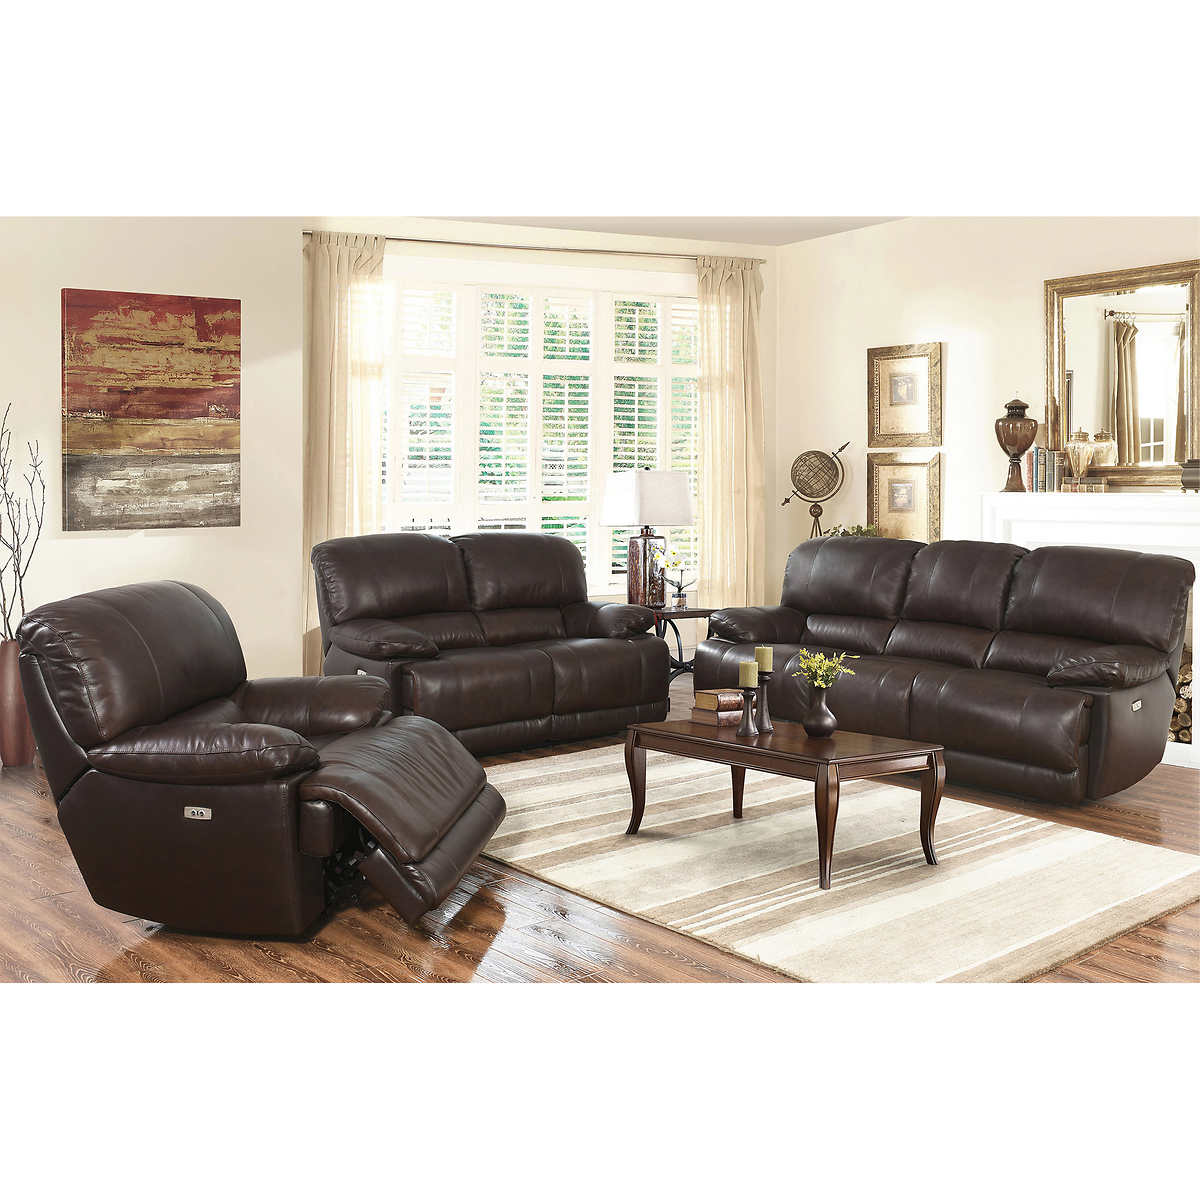 3 Piece Reclining Living Room Set Arleta 3Piece Top Grain Leather Powerreclining Living Room Set